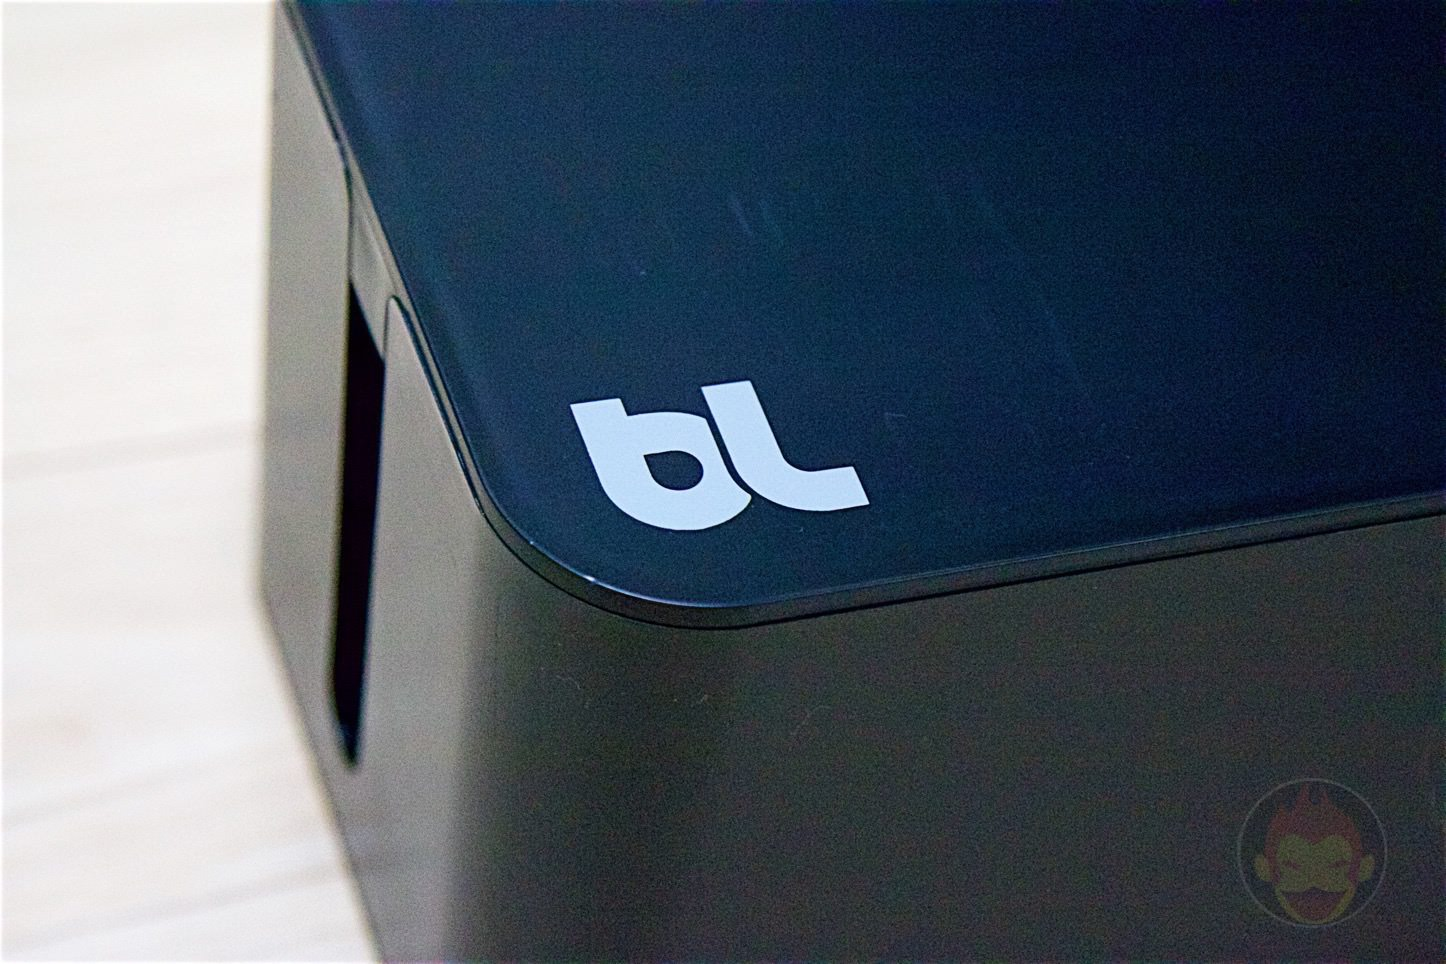 Bluelounge-The-CableBox-03.jpg